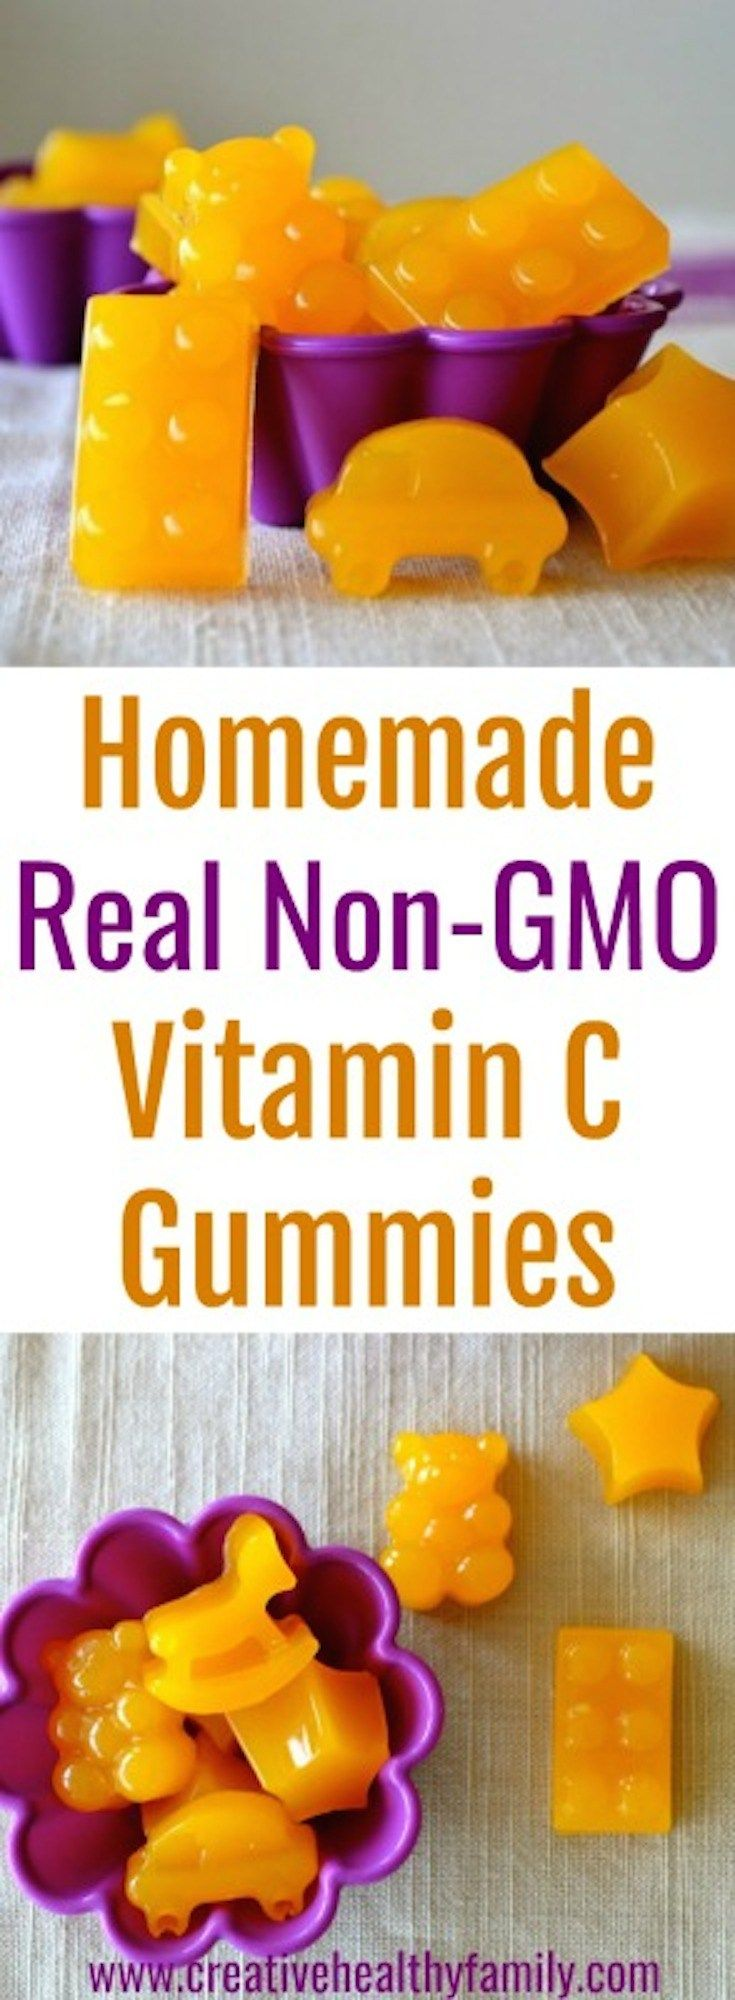 These Homemade Real Non-GMO Vitamin C Gummies are made from fruits that contain lots of naturally-occurring vitamin C. Make your own Vitamin C vitamins.